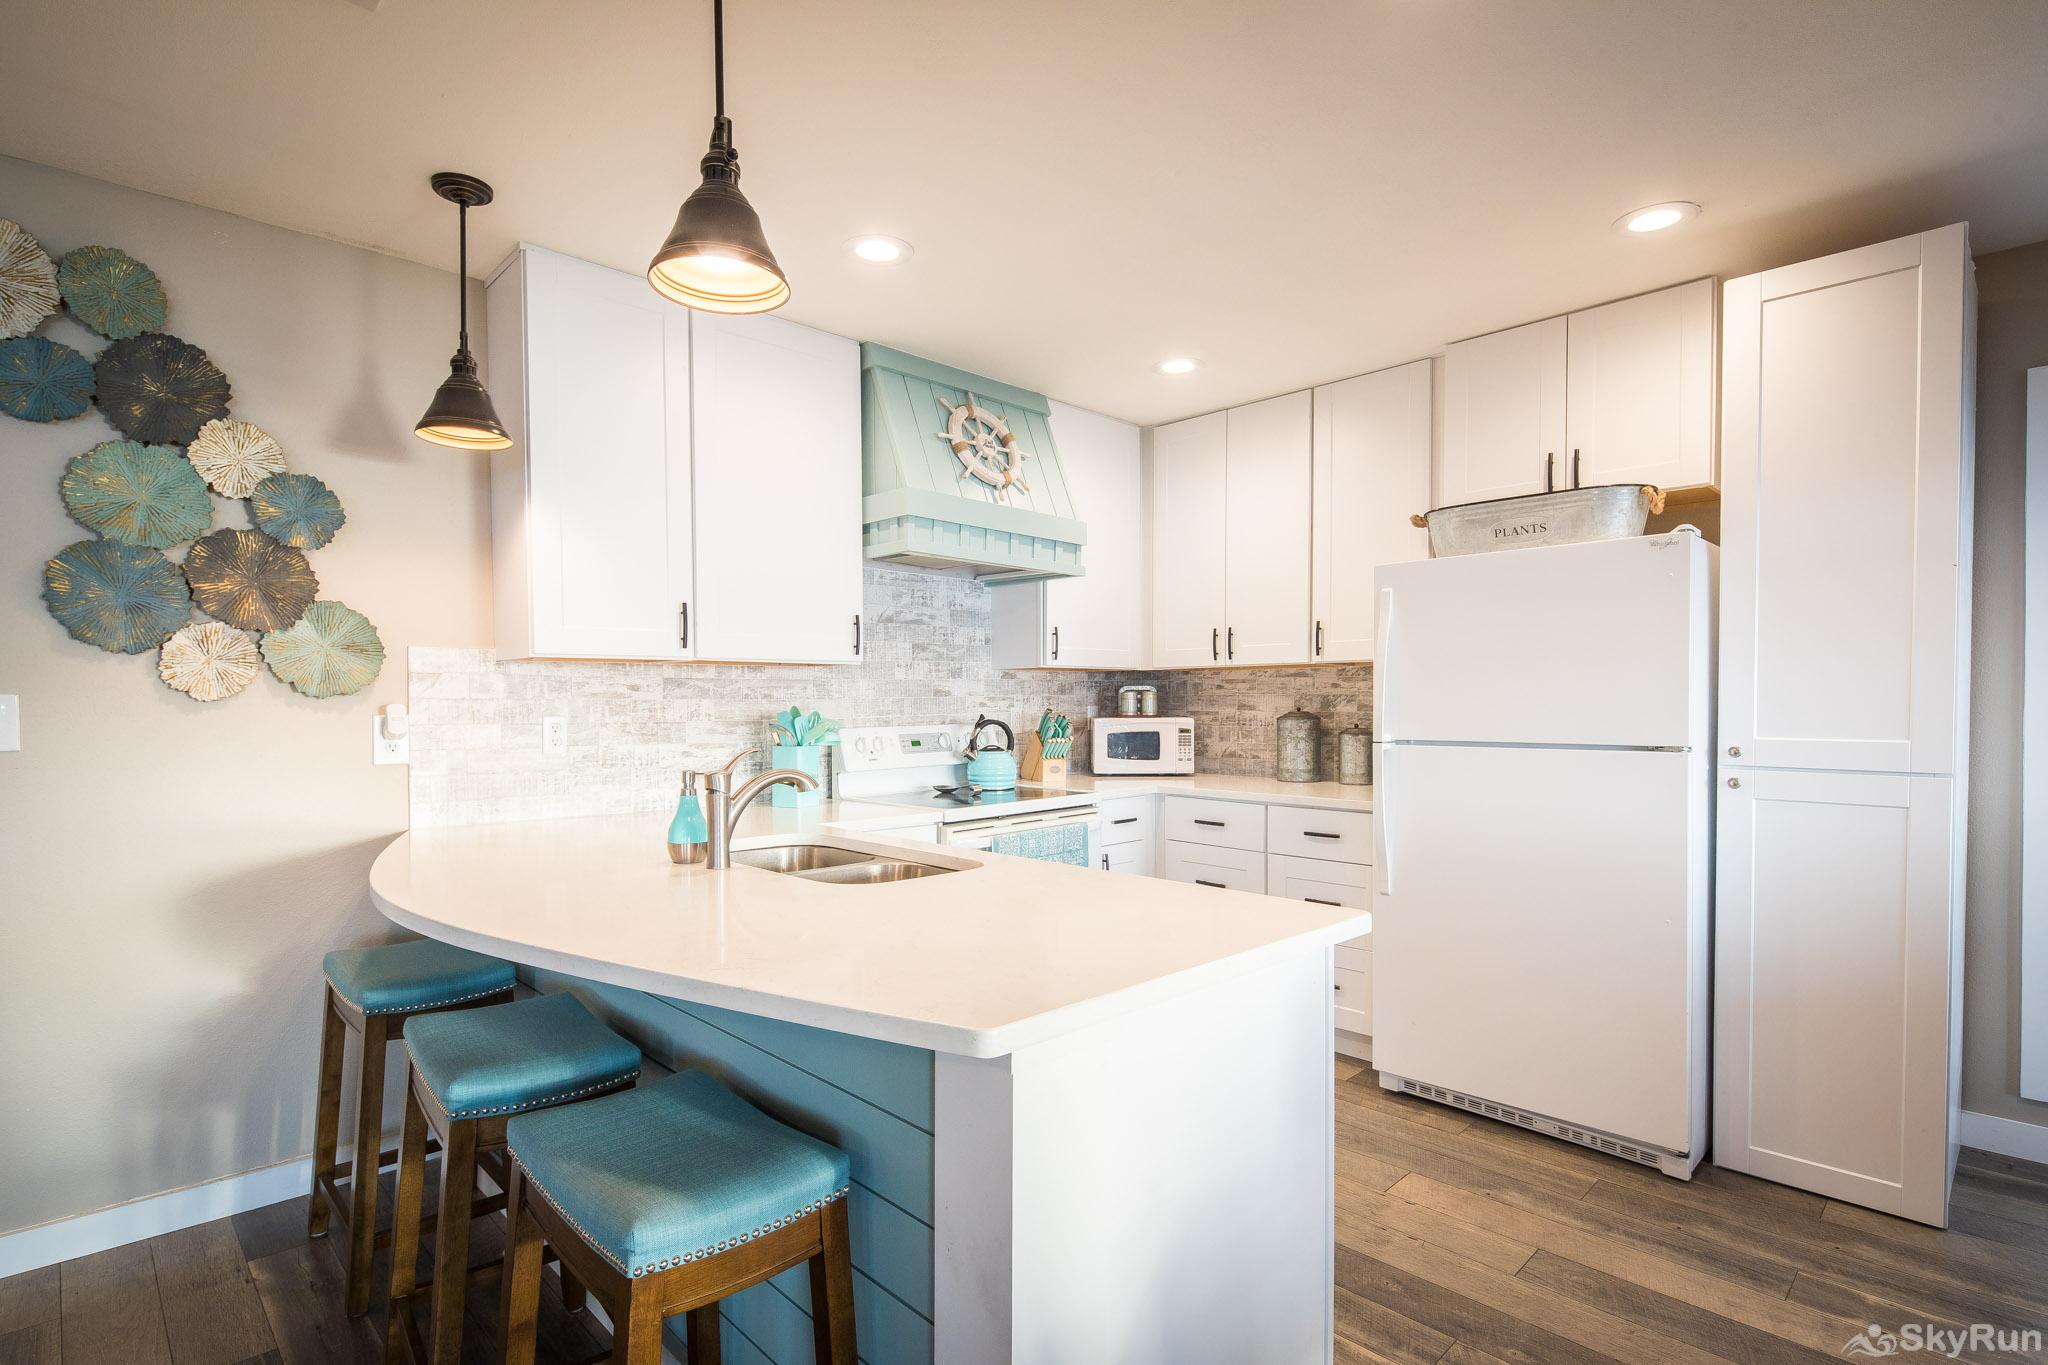 CLIFF HOUSE AT CANYON LAKE Newly remodeled kitchen